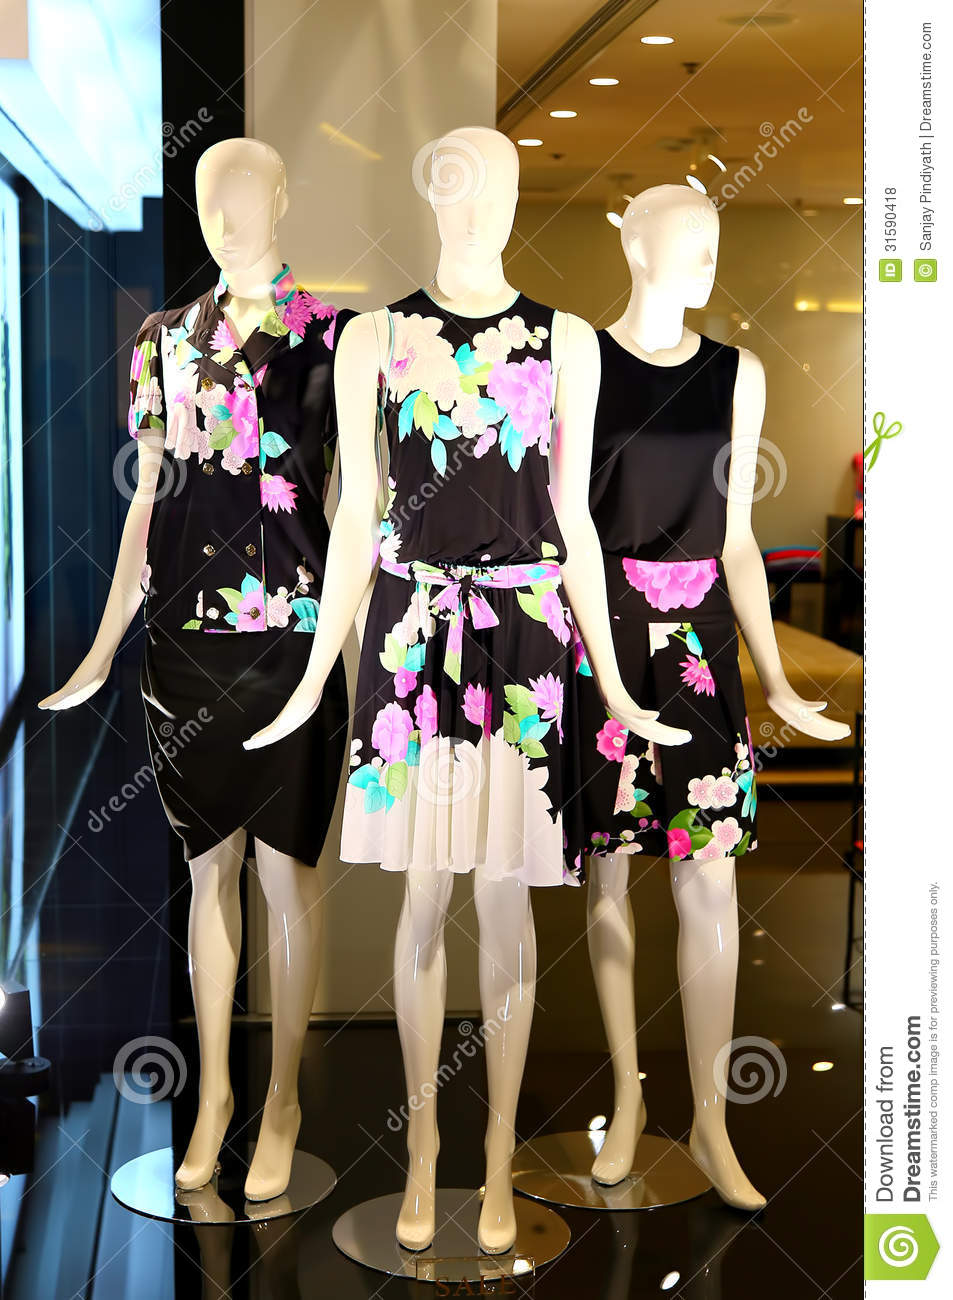 Contemporary women s clothing on display at a apparels boutique